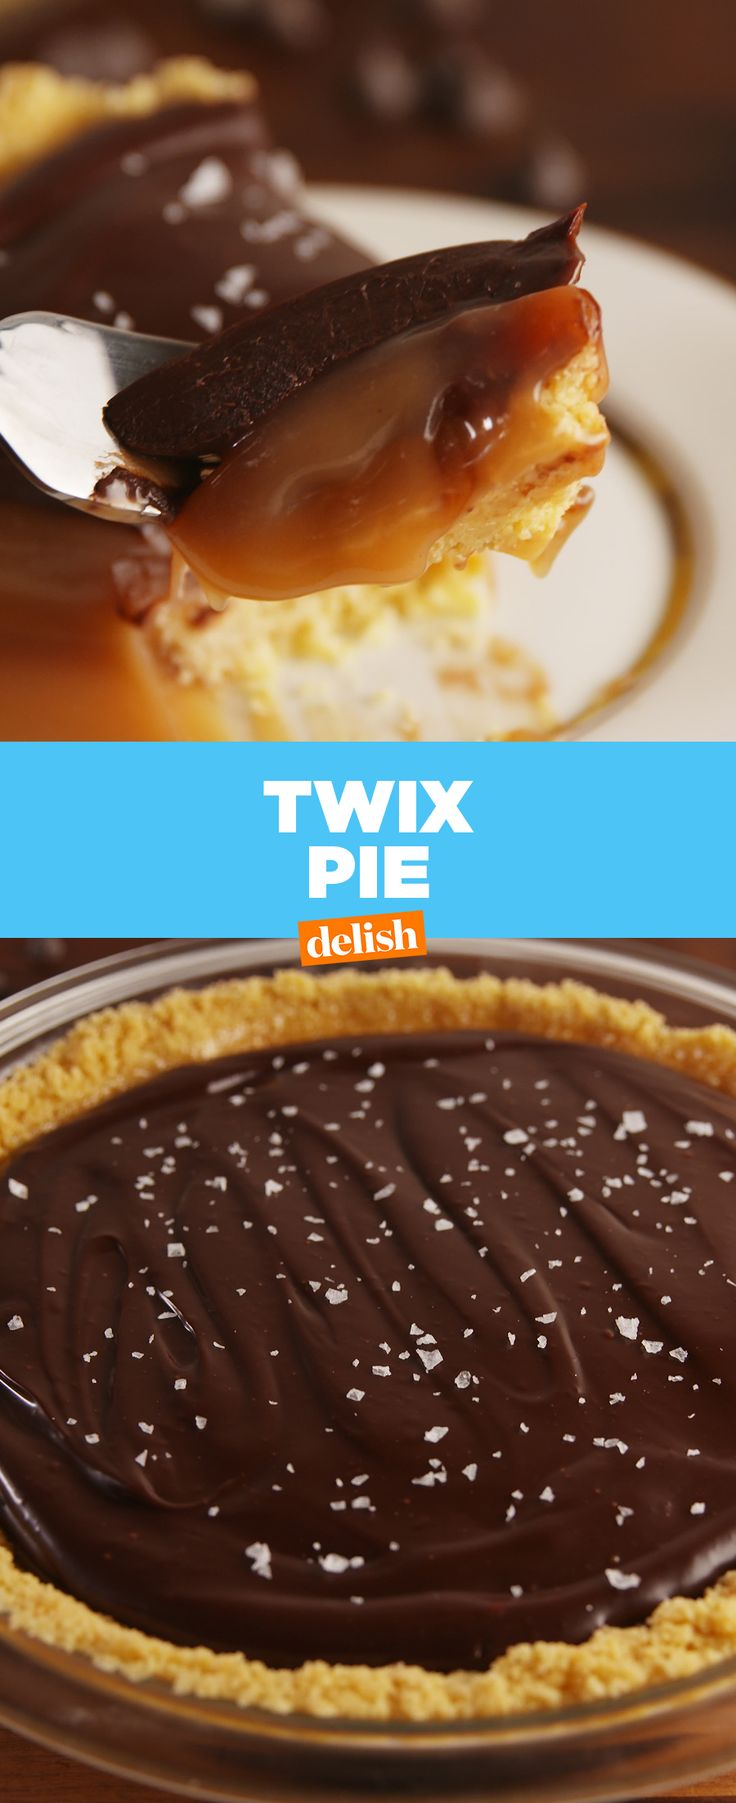 You've never eaten Twix like this before. #candy #candybar #twix #pie #chocolate #baking #recipes #easyrecipes #caramel